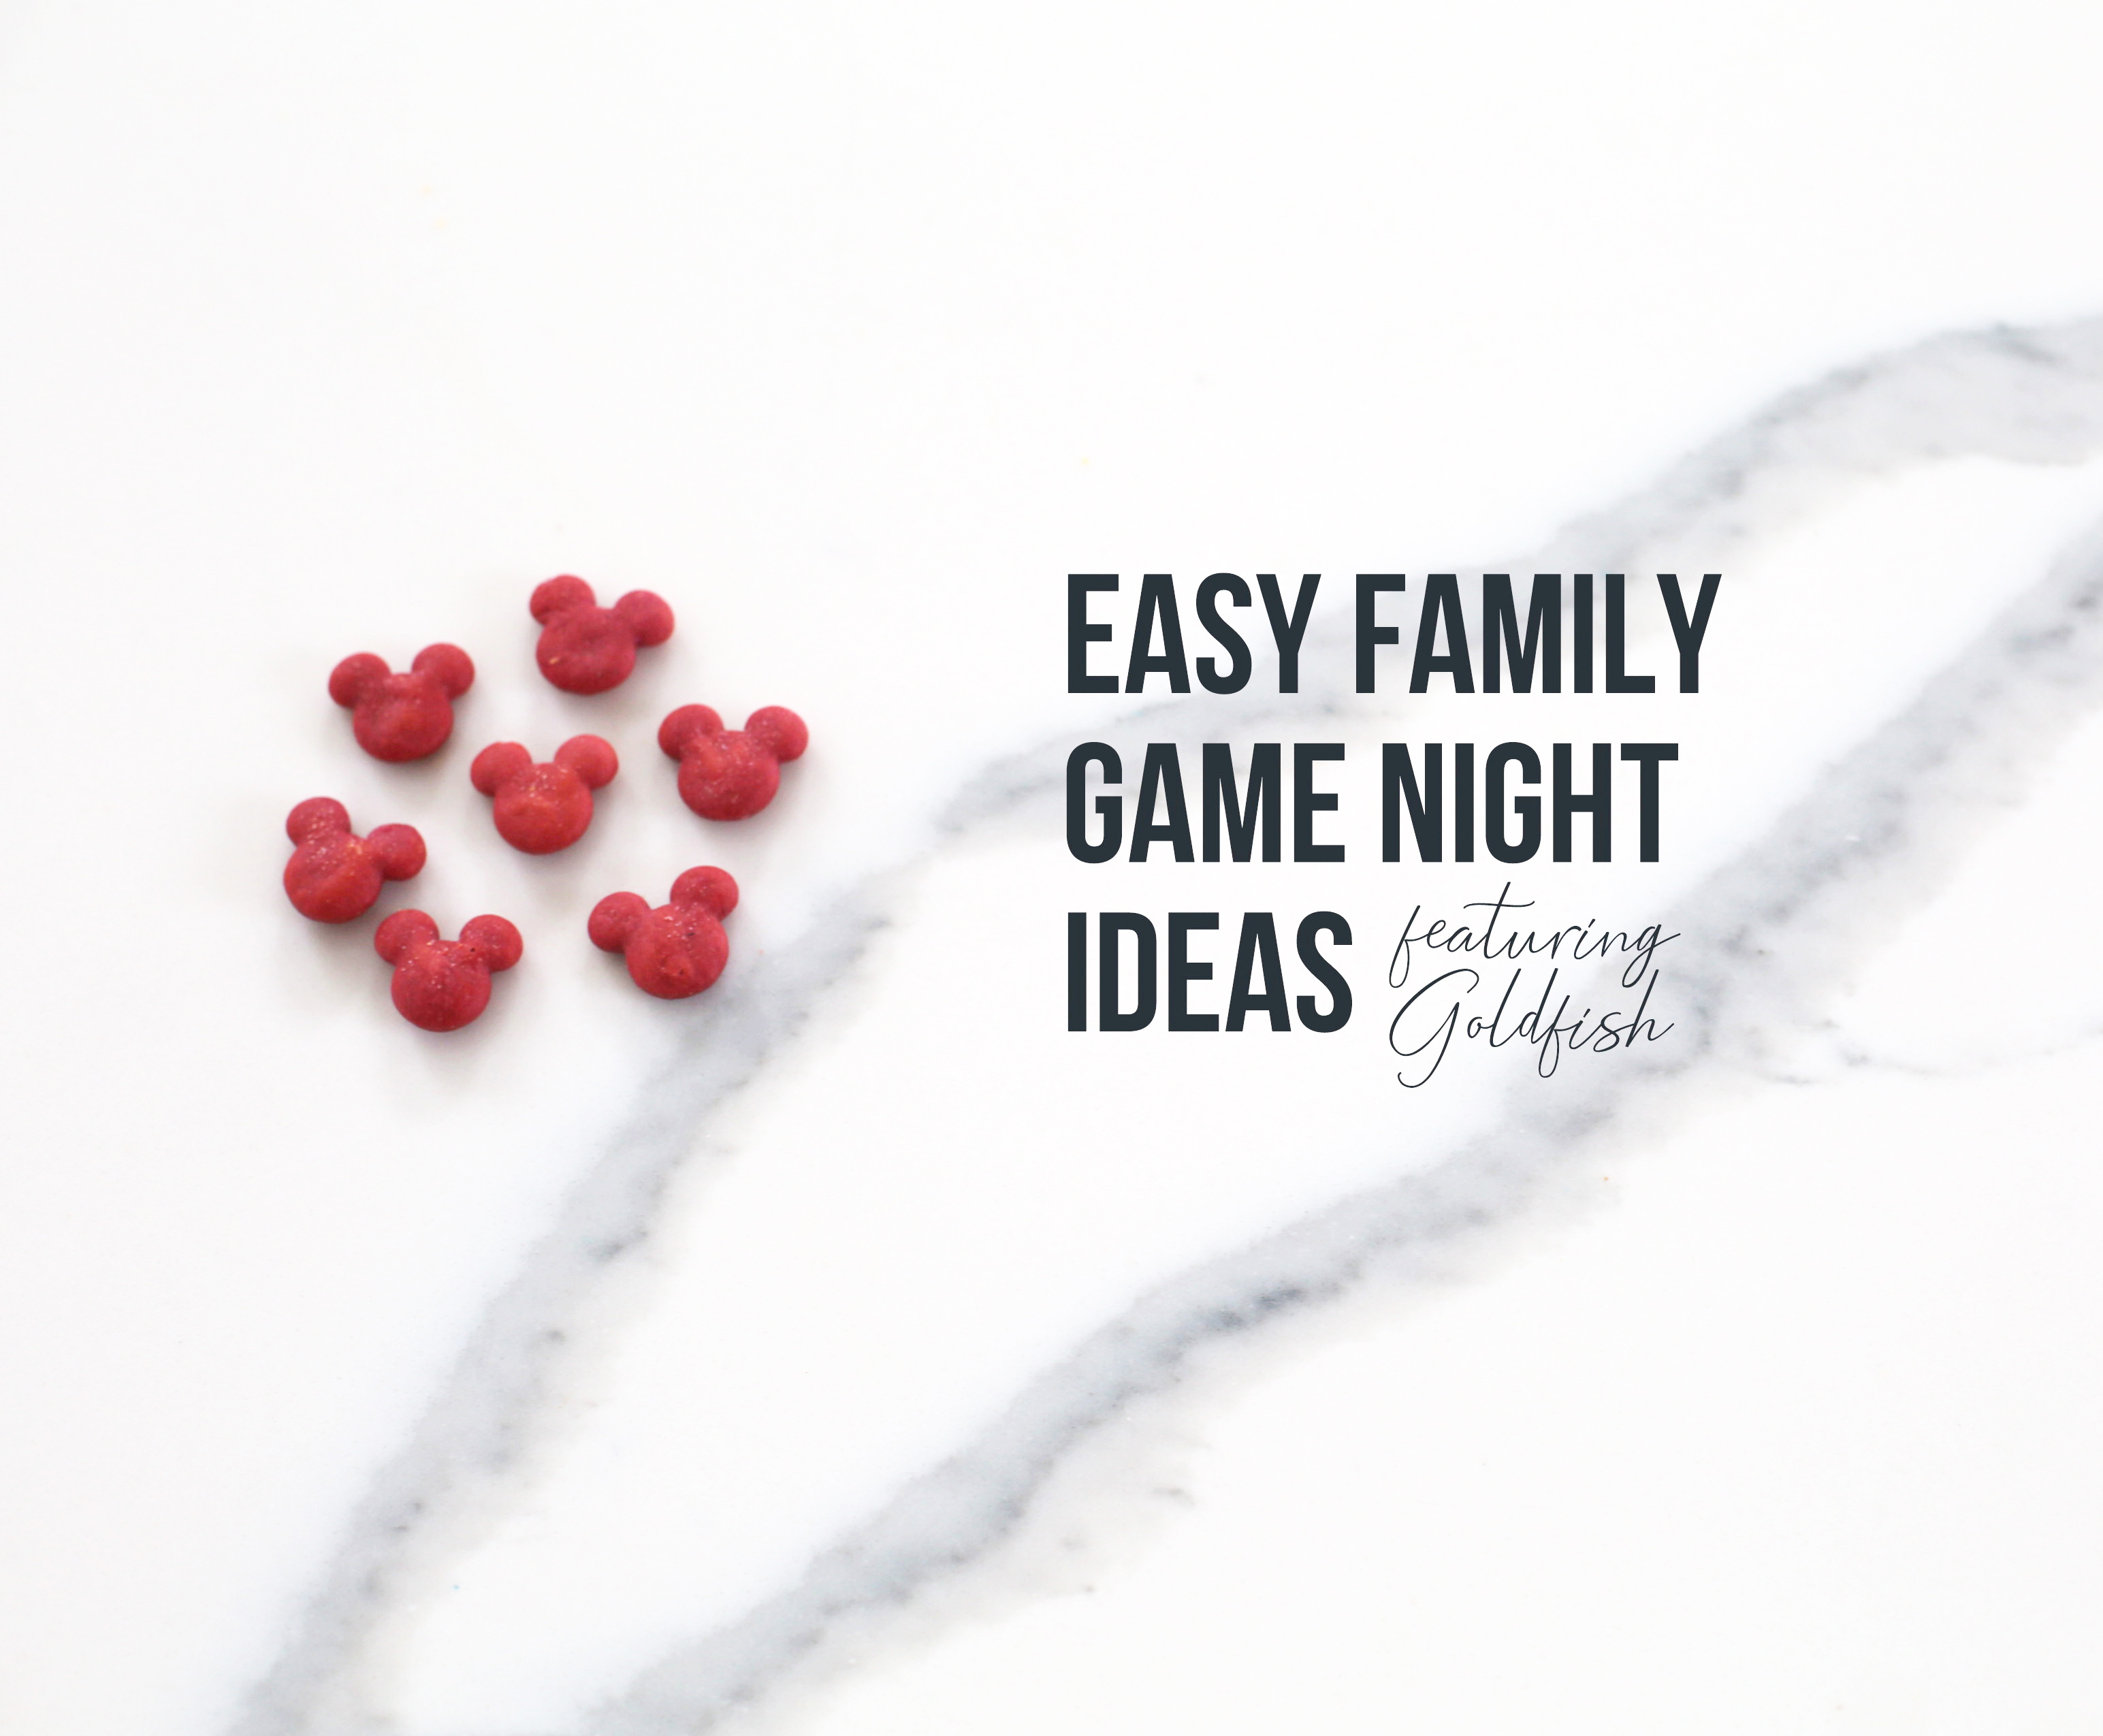 Easy Family Game Night